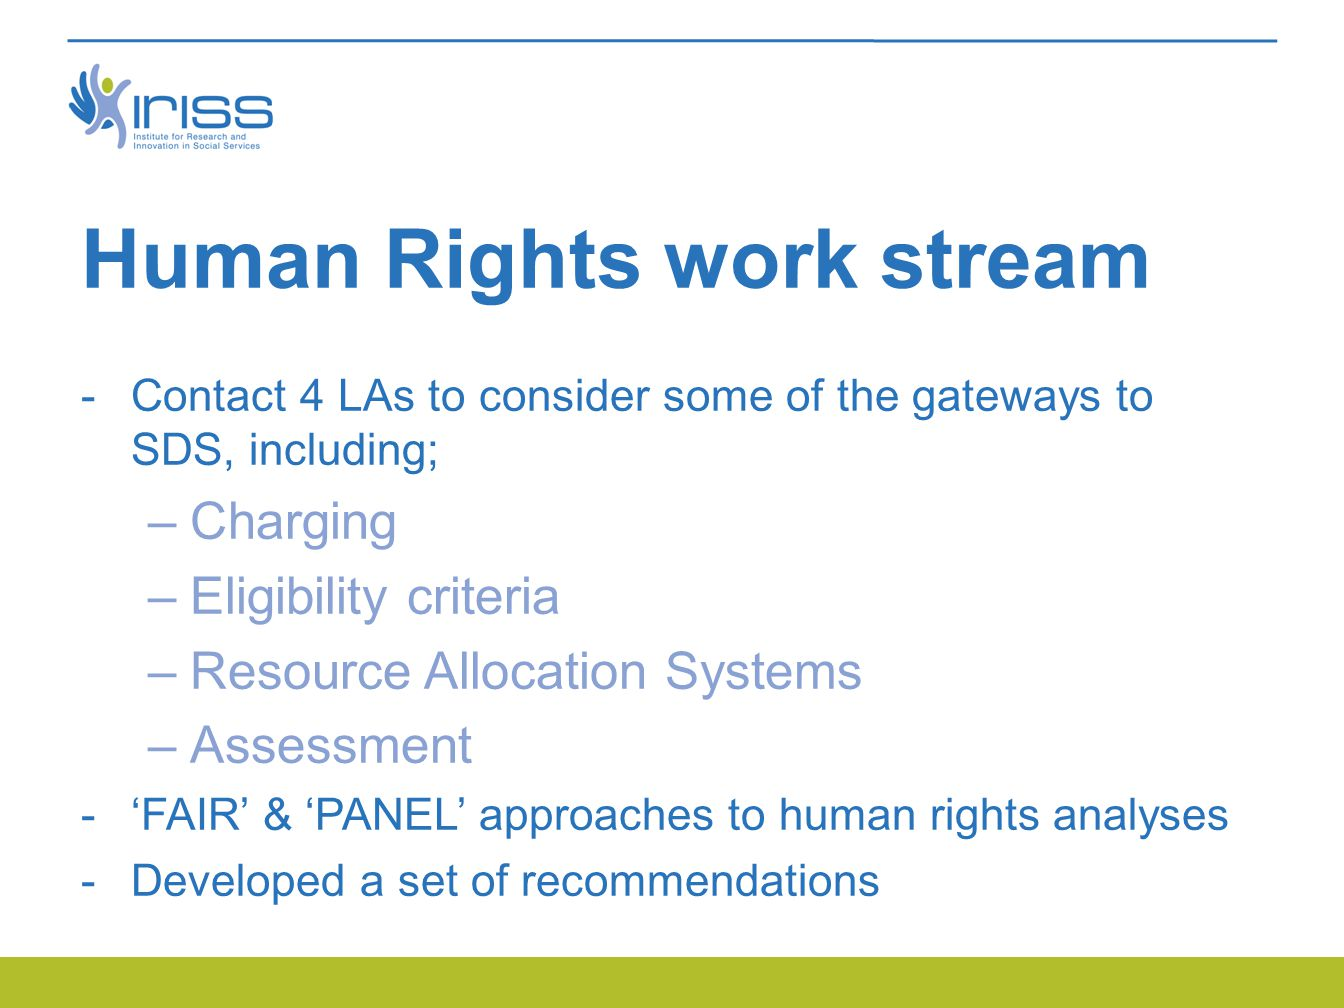 Human Rights work stream -Contact 4 LAs to consider some of the gateways to SDS, including; –Charging –Eligibility criteria –Resource Allocation Systems –Assessment -'FAIR' & 'PANEL' approaches to human rights analyses -Developed a set of recommendations